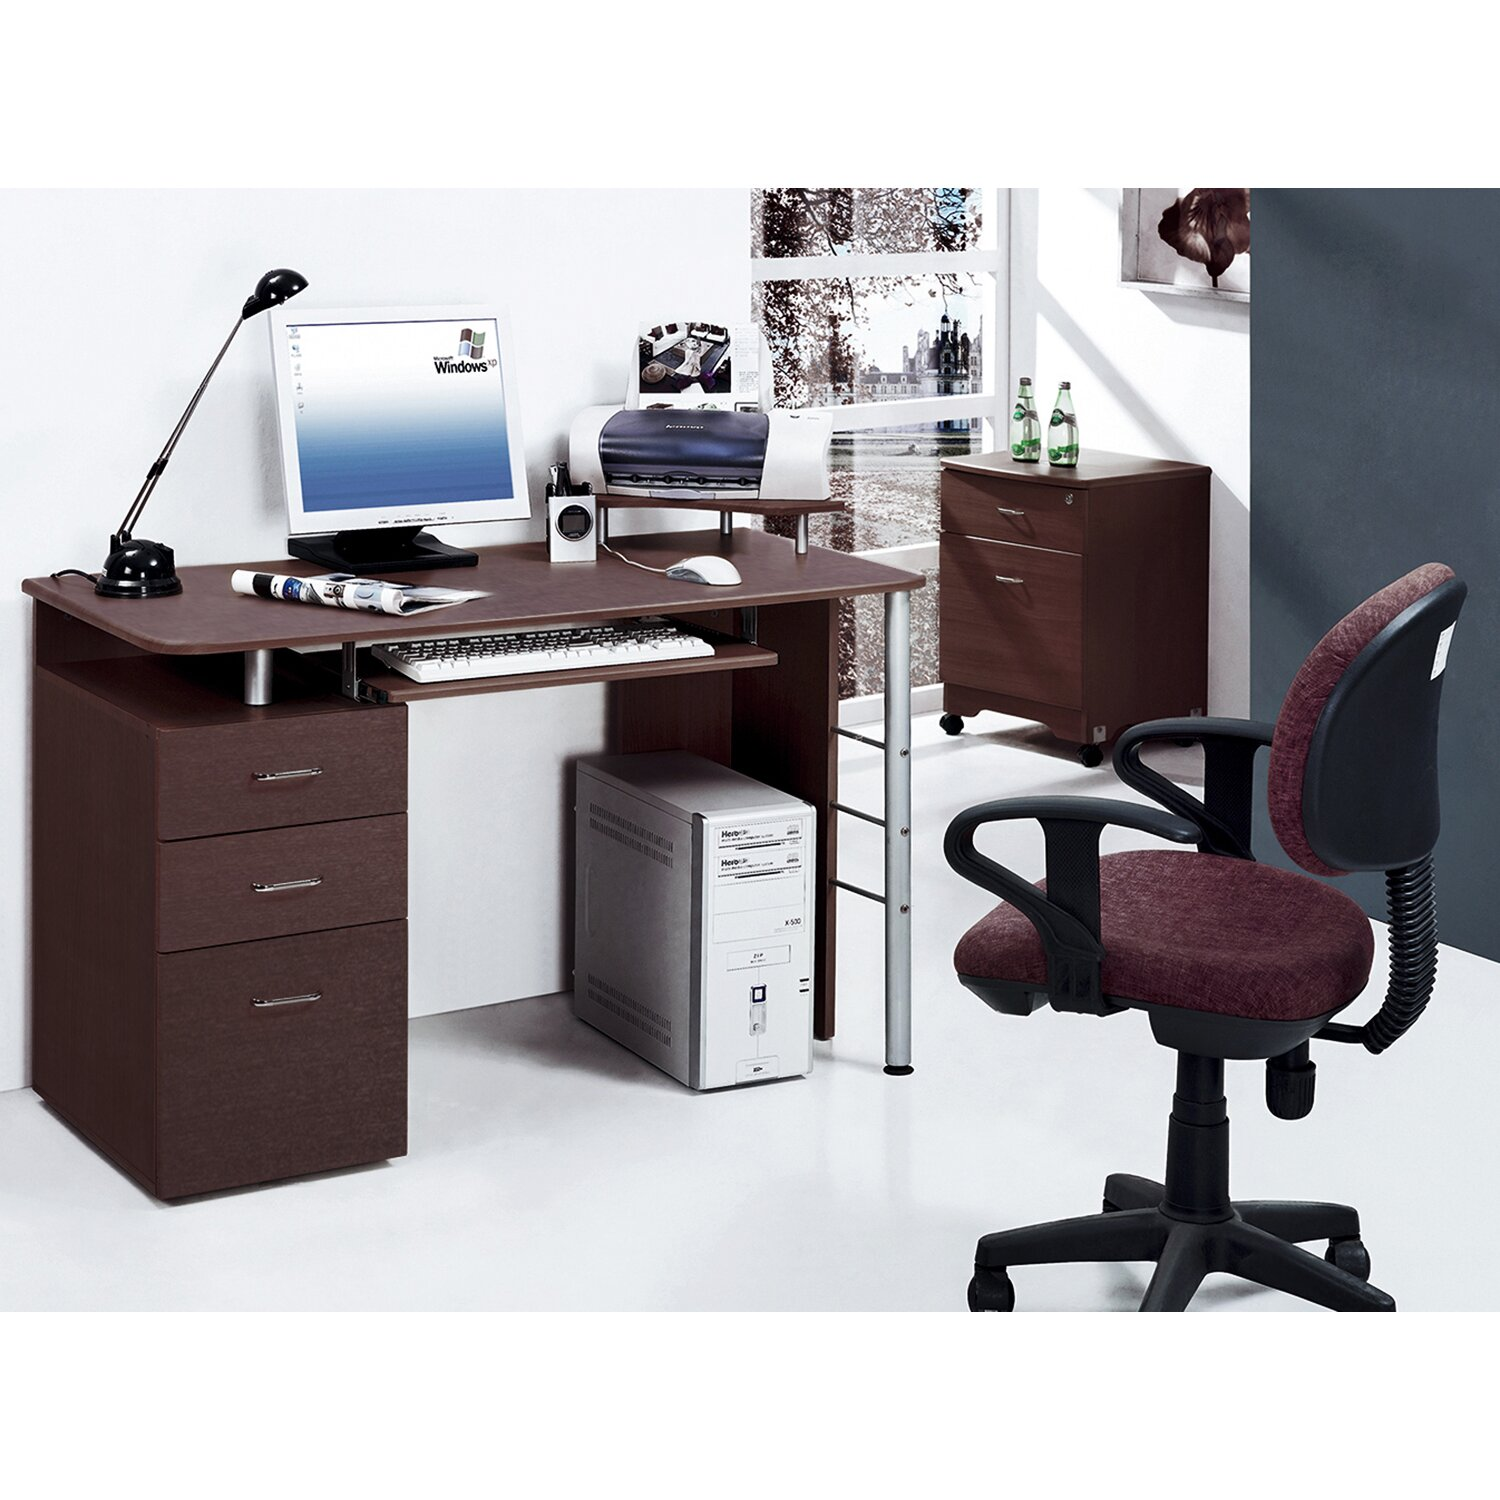 Computer Desk With Keyboard Tray Printer Platform And